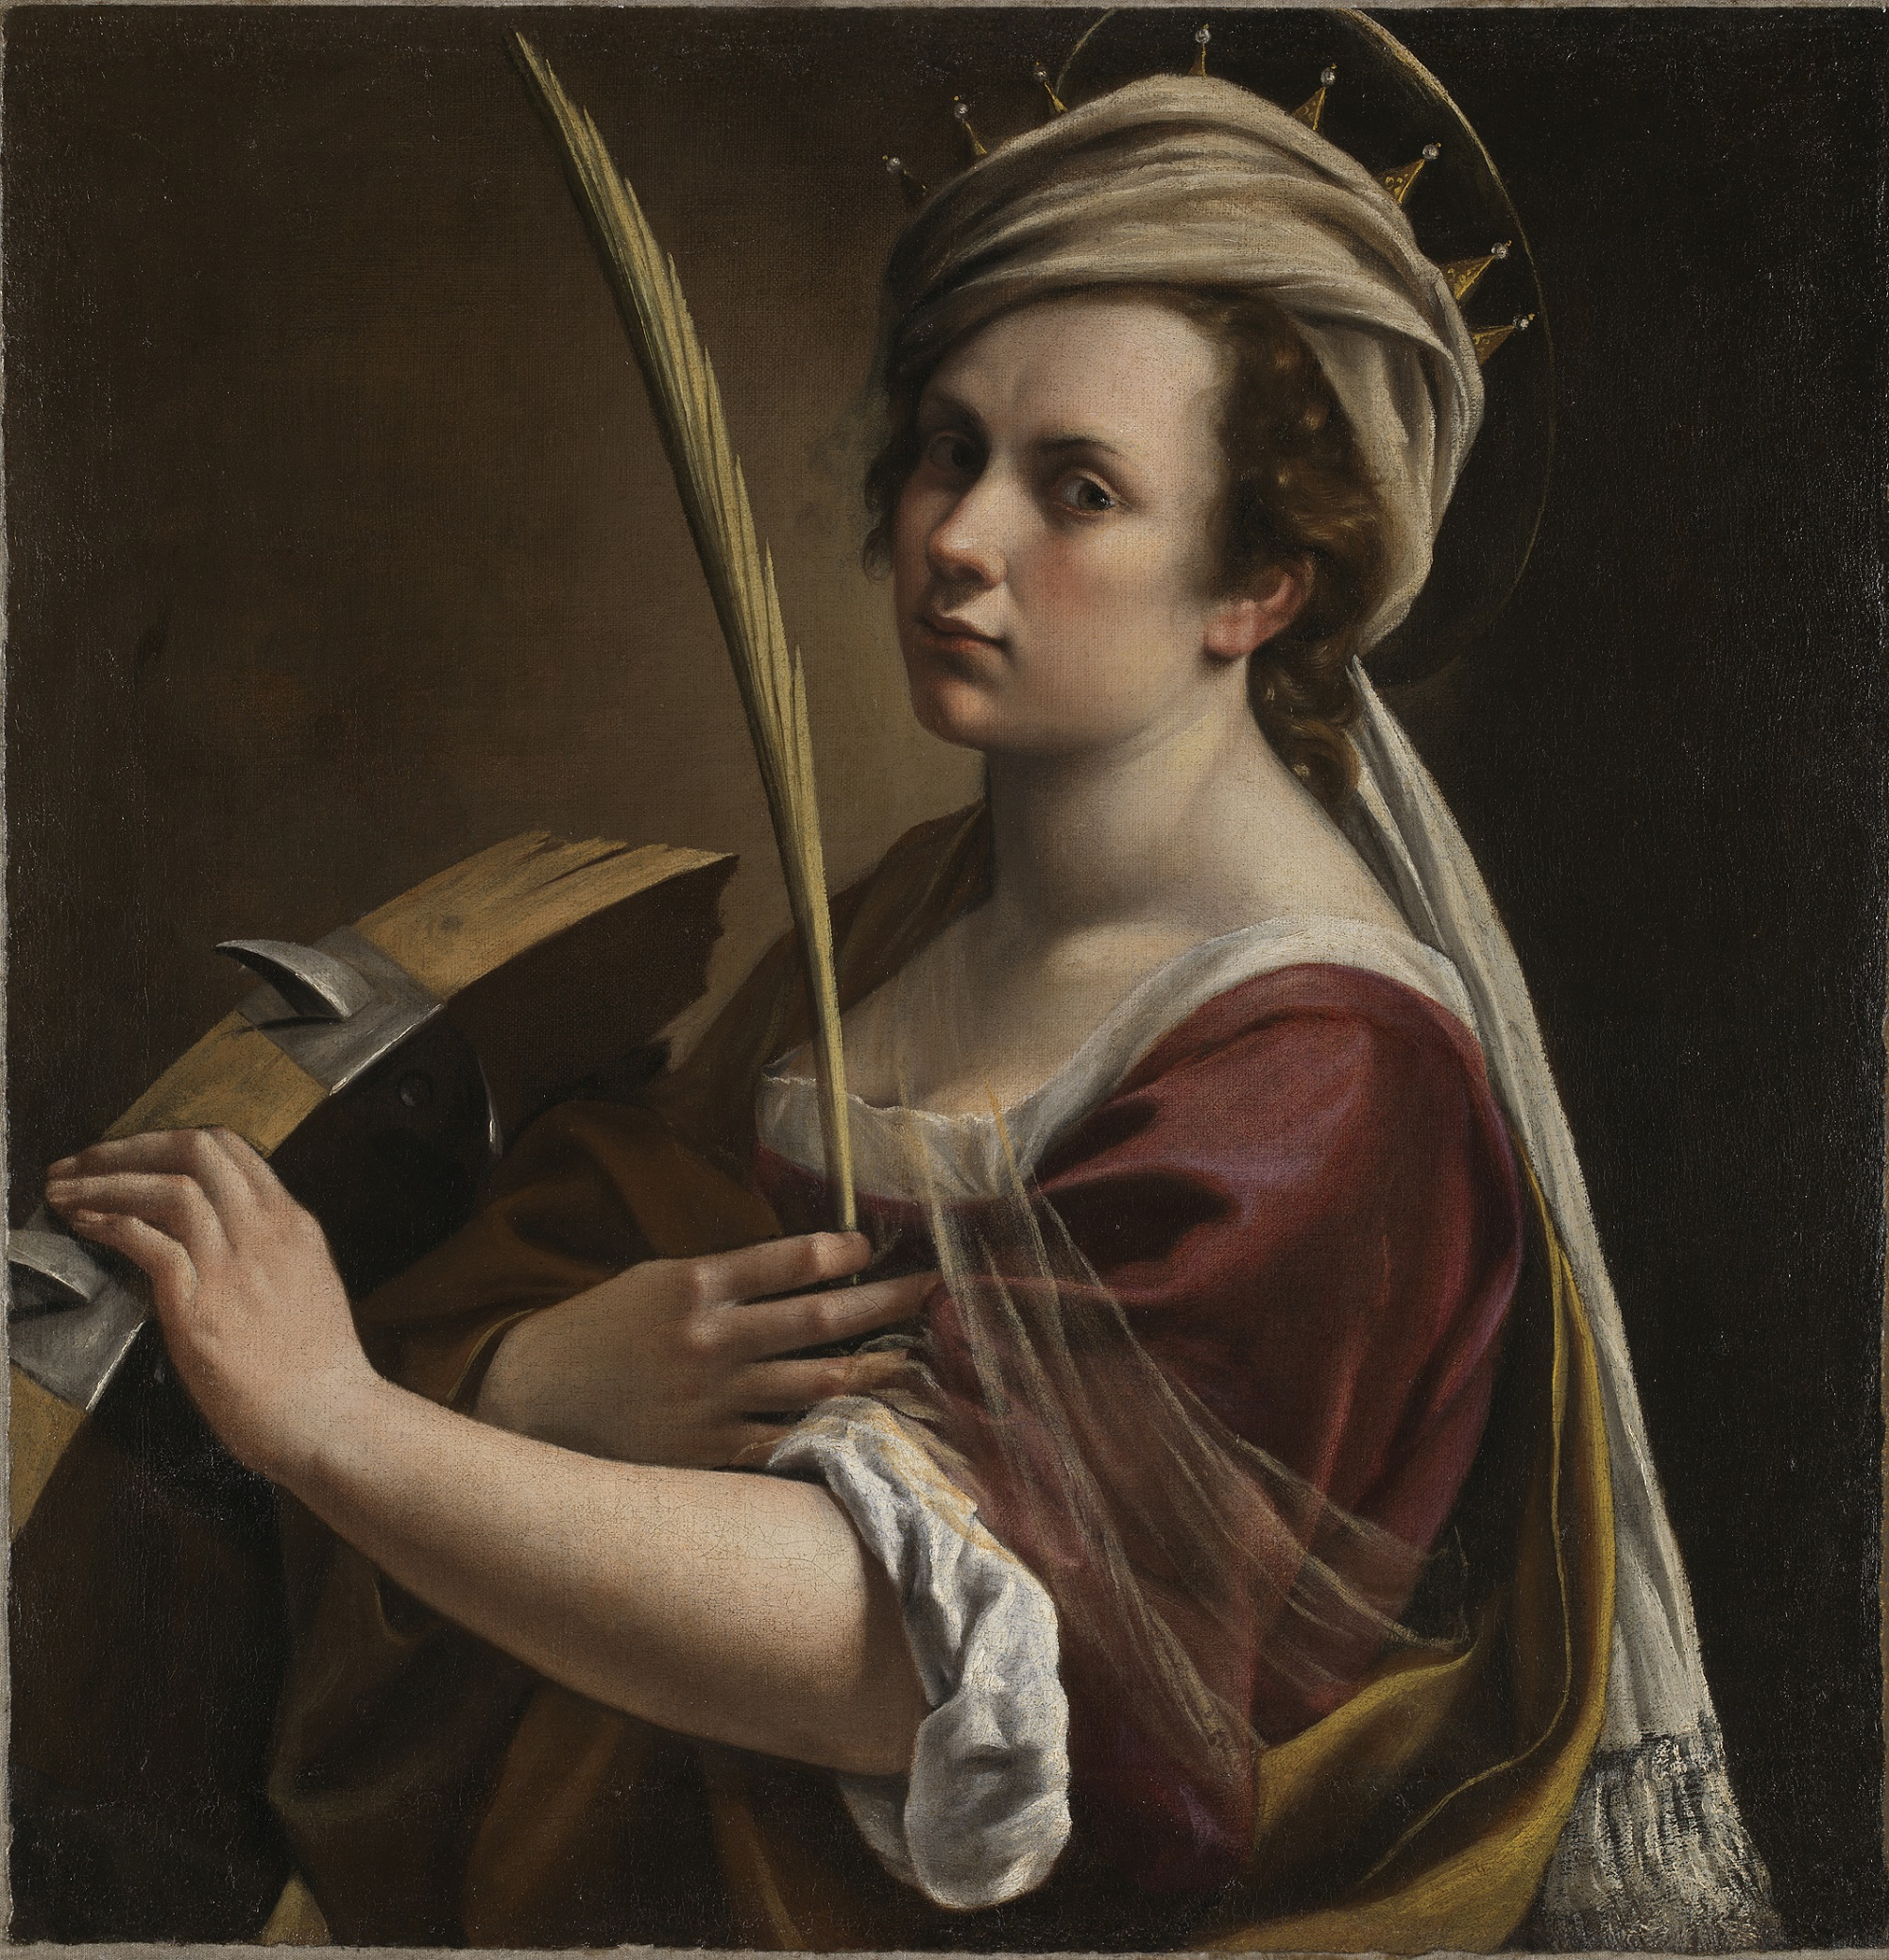 Self Portrait as Saint Catherine of Alexandria Artemisia Gentileschi about 1615-17 © The National Gallery, London